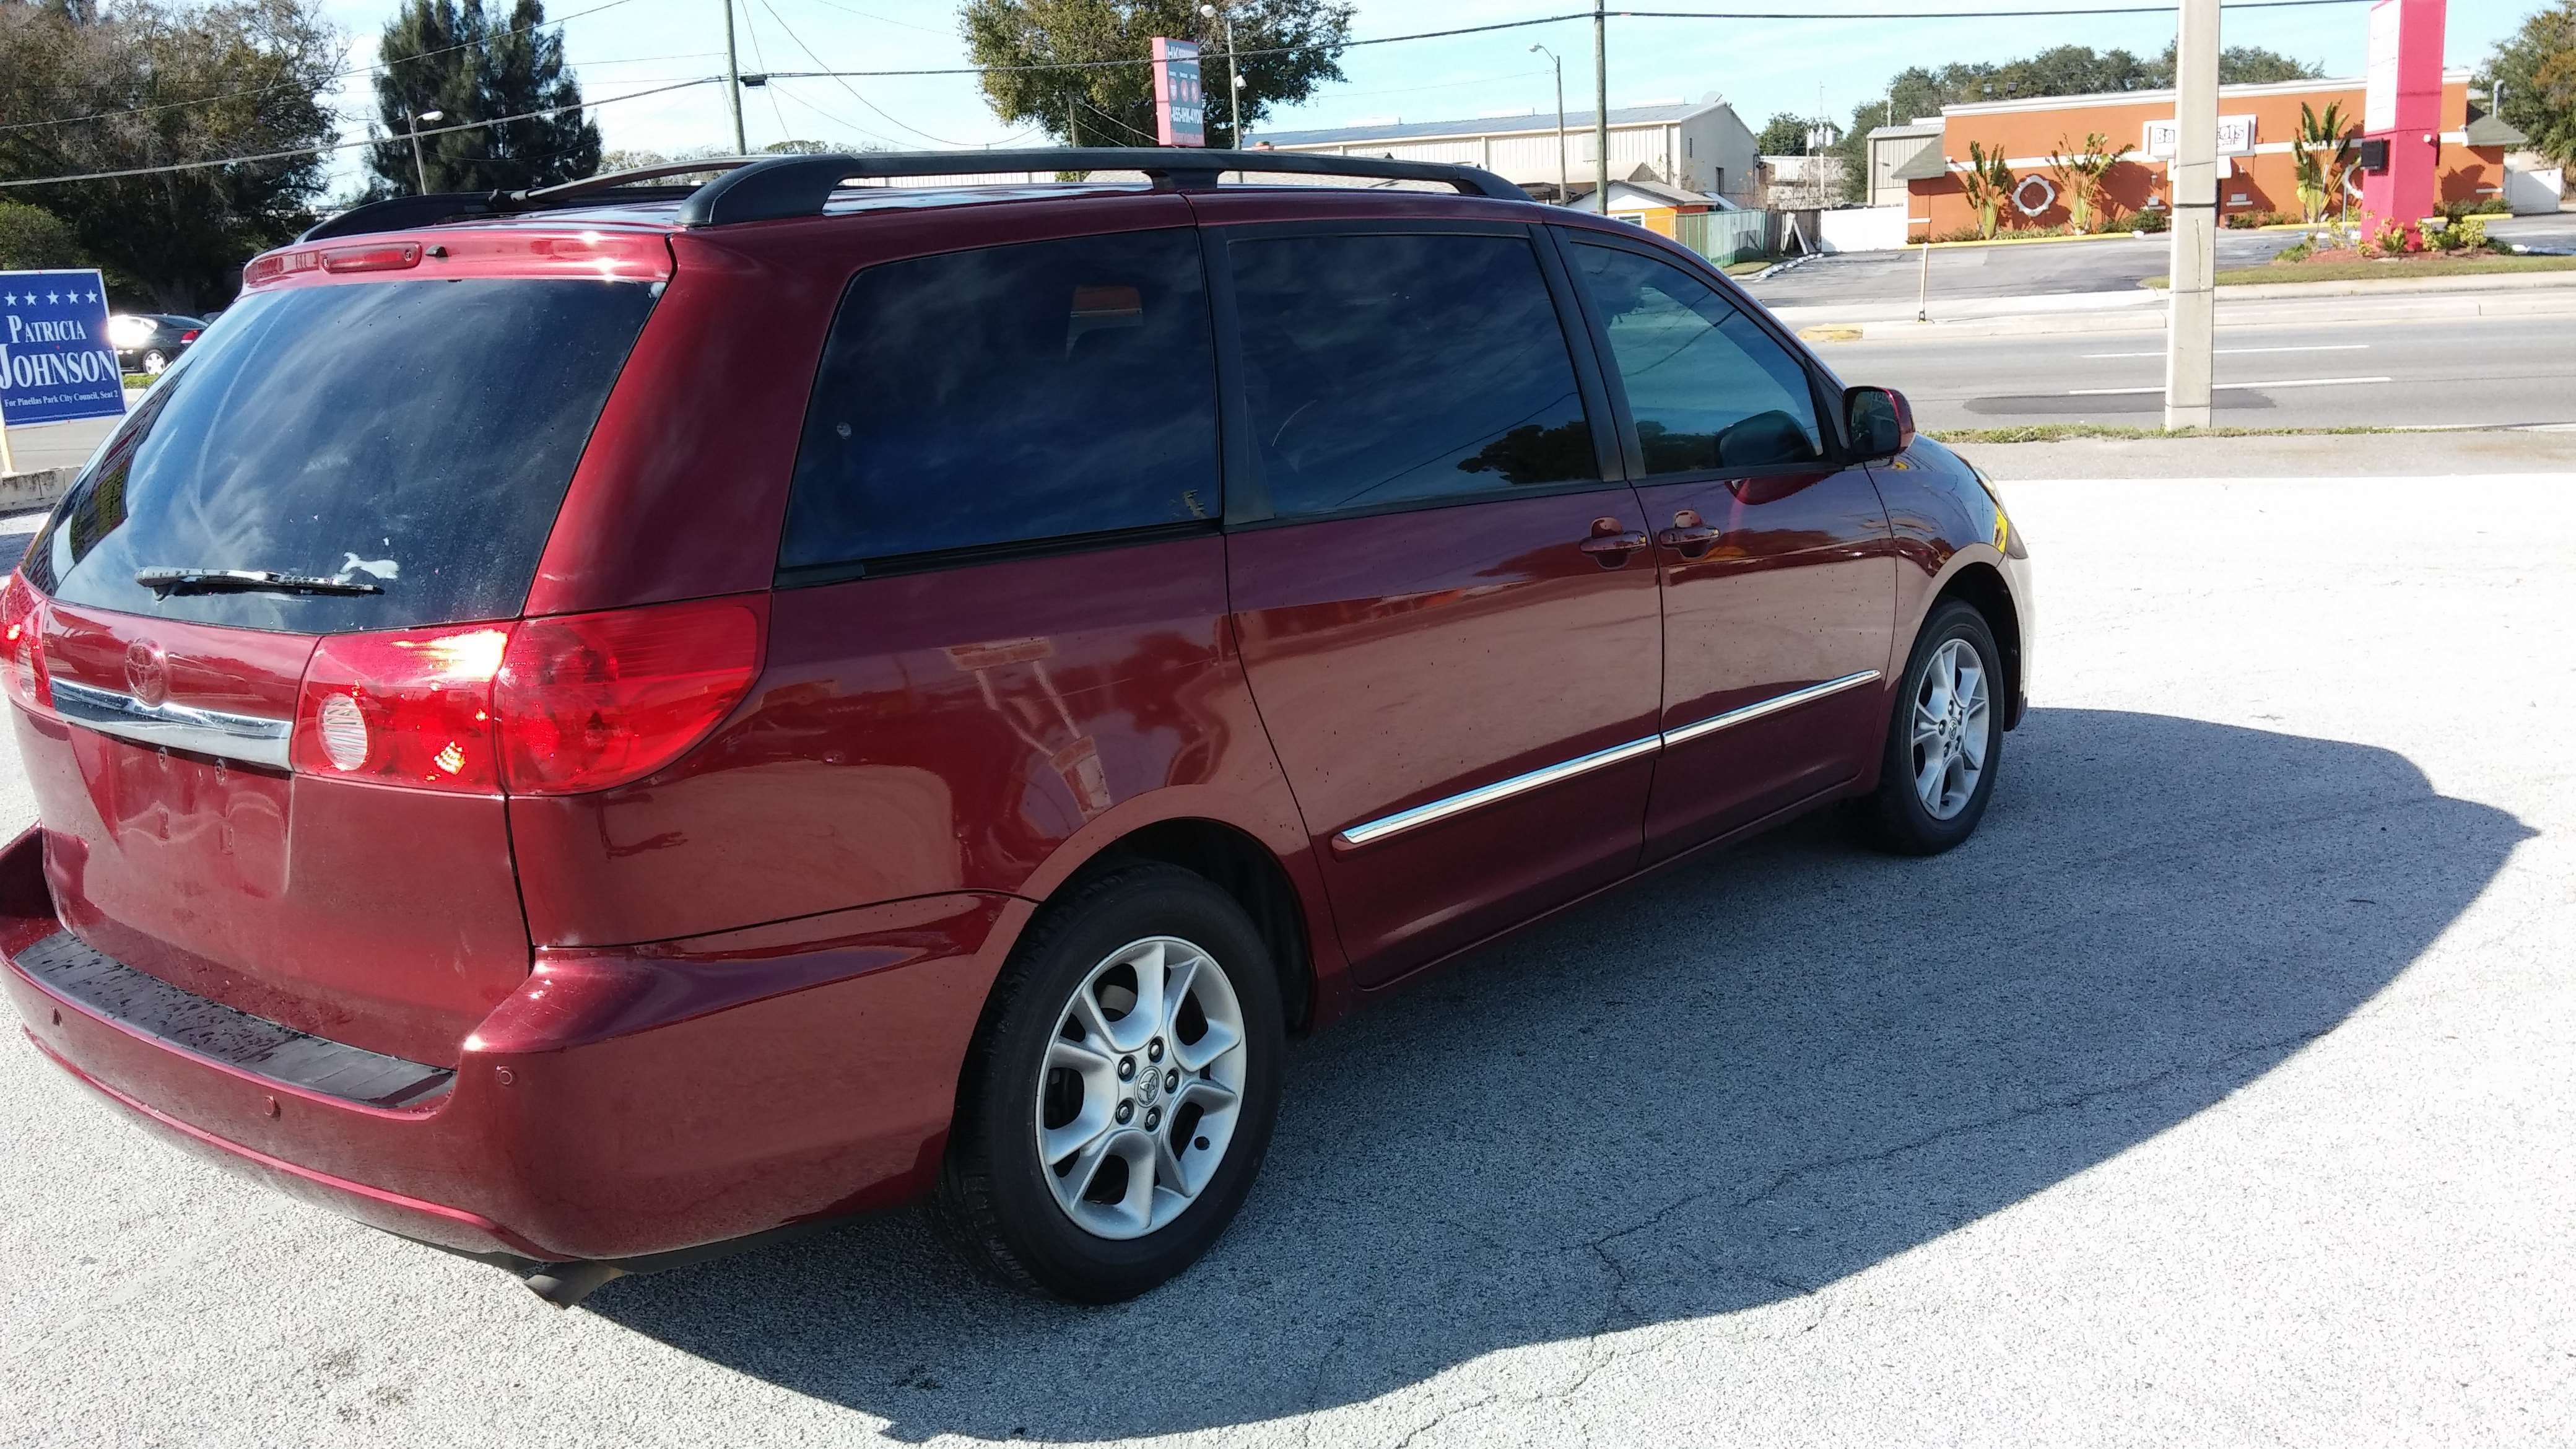 Pin By Uce Mark On Used 2006 Toyota Sienna For Sale 10 500 At Pinellas Park Fl Toyota Sienna For Sale Toyota Sienna Toyota